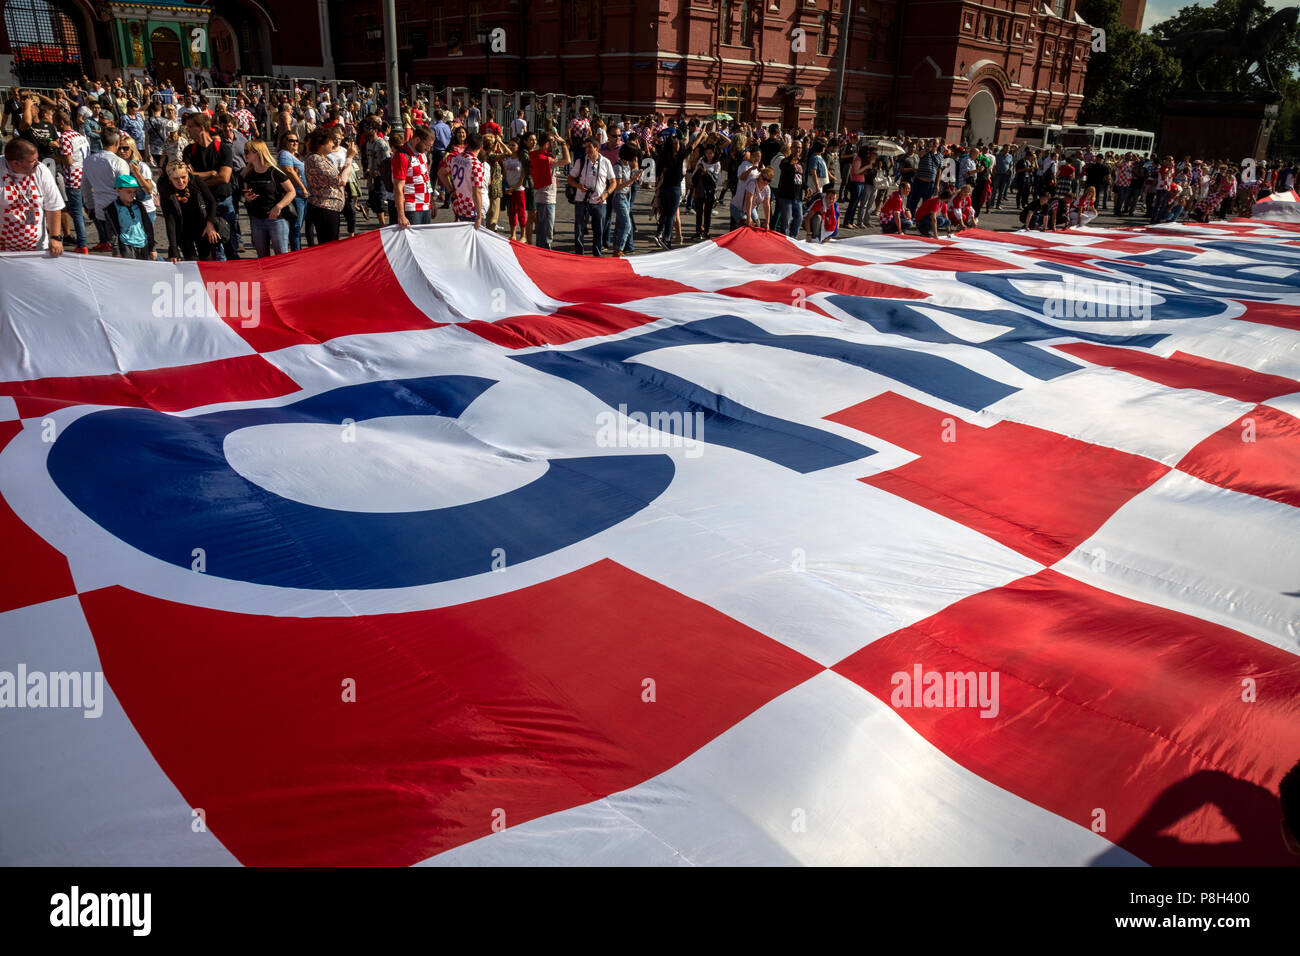 Moscow, Russia. 11th July, 2018. Croatia's fans displayed a 50-meter-long banner in the center of Moscow, which read in Russian 'Thank you, Russia!' during Wordl Cup FIFA 2018 Russia Credit: Nikolay Vinokurov/Alamy Live News - Stock Image